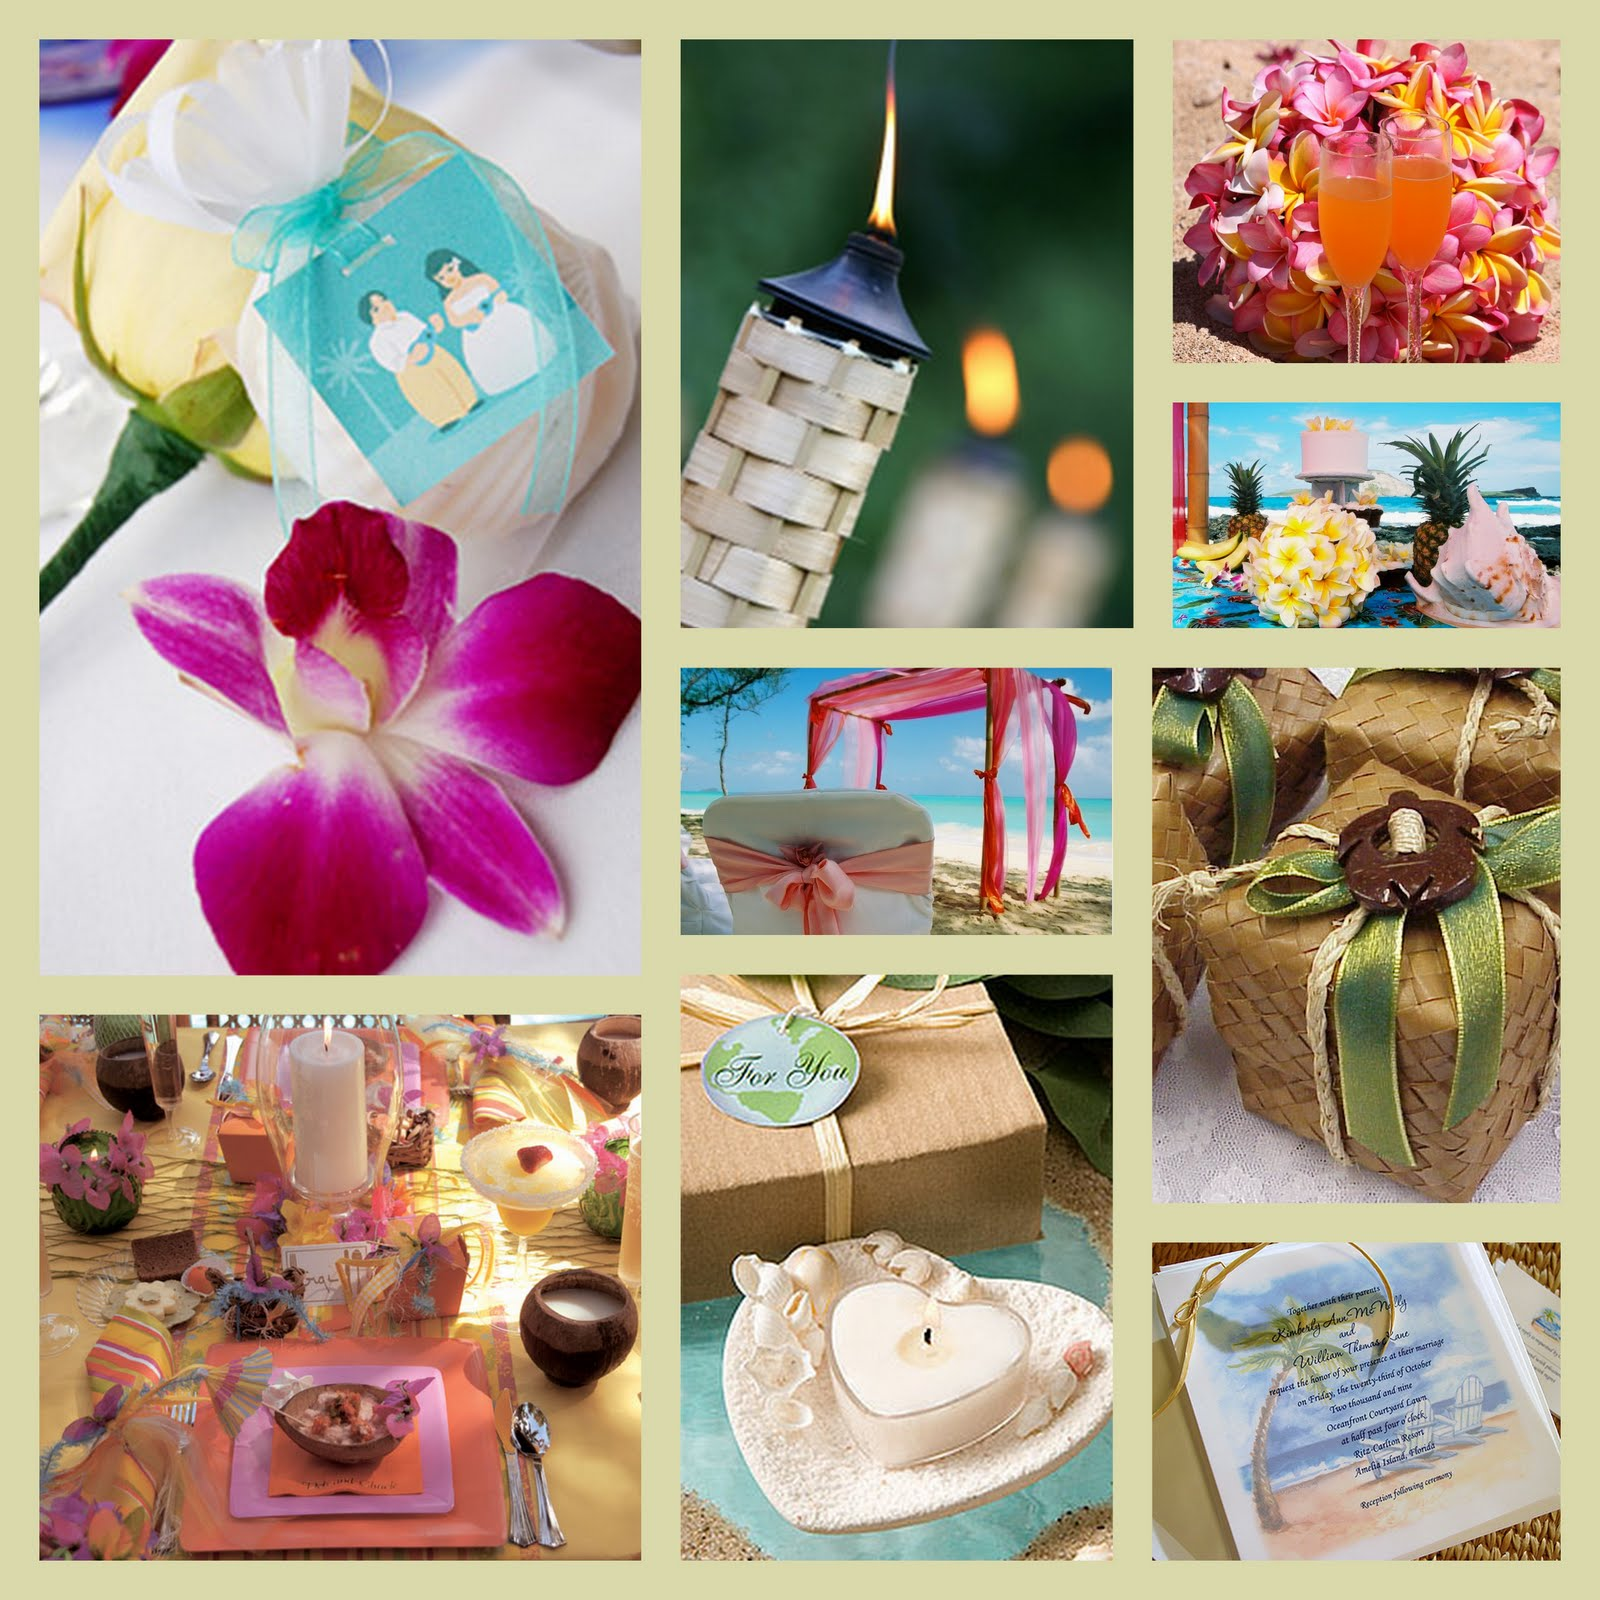 Hawaiian Themed Wedding Ideas: Premier Bride Magazine: Texas: Wedding Theme: Hawaiian/Luau